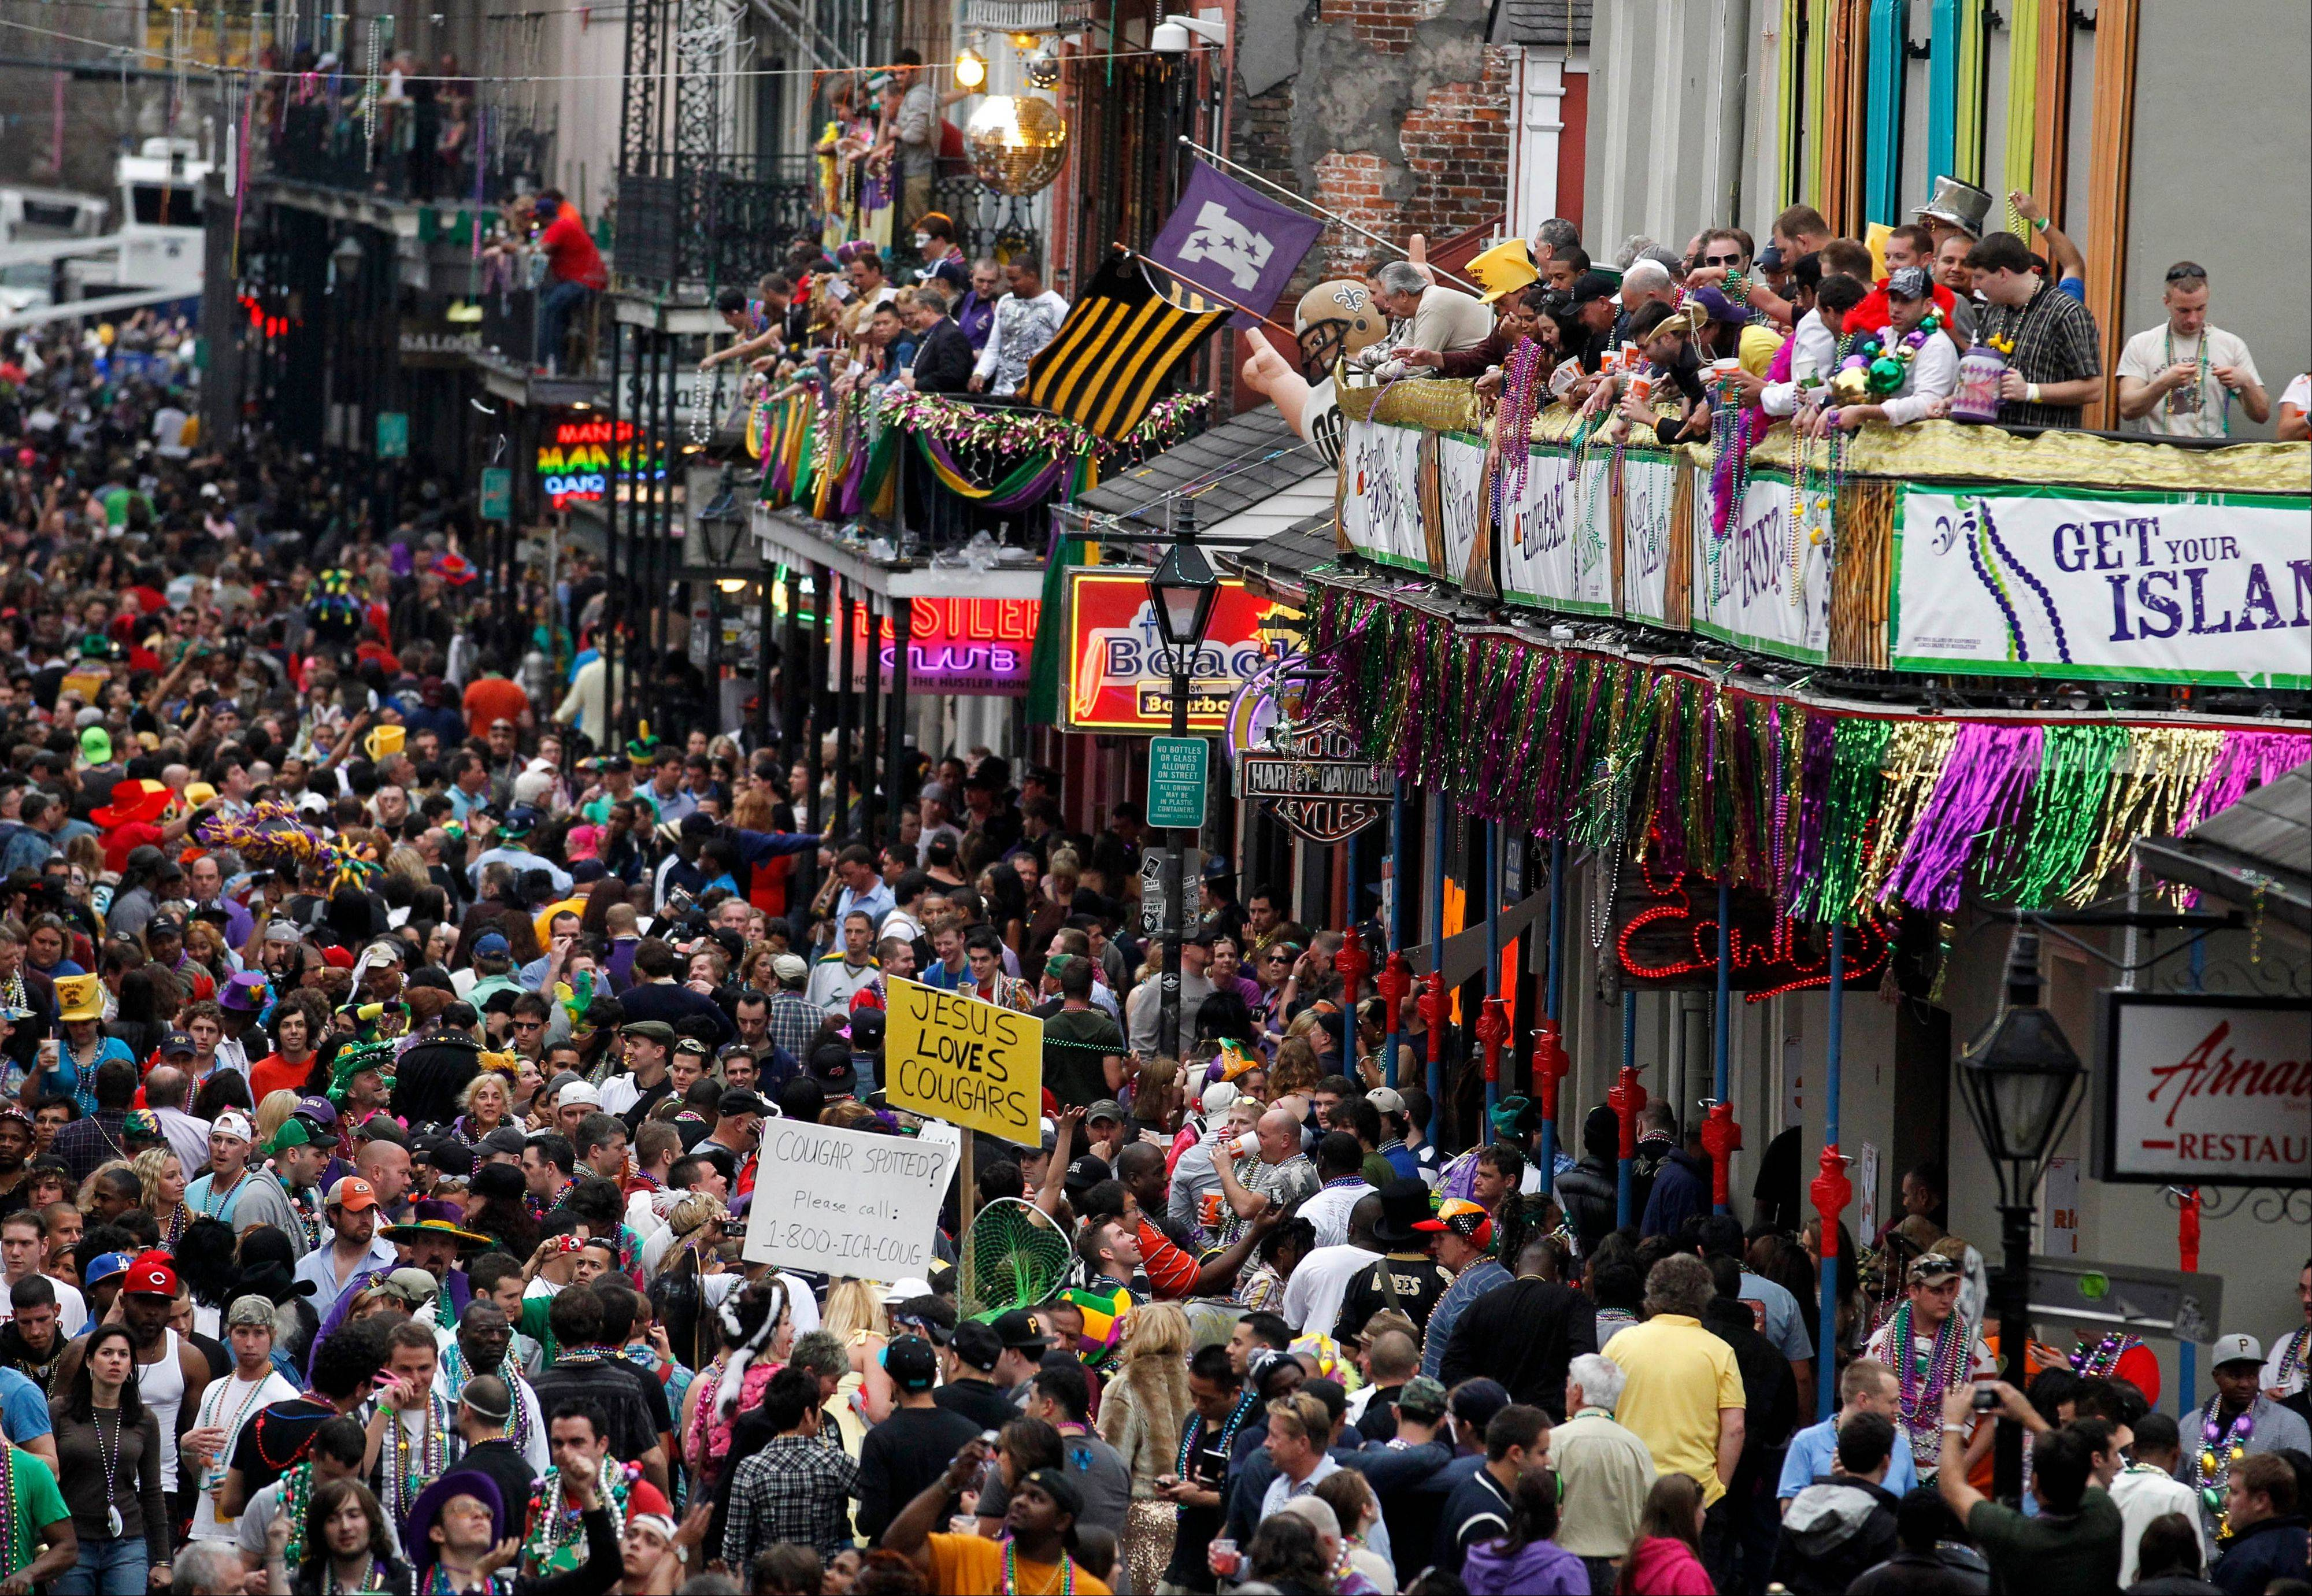 Crowds congregate on Bourbon Street for festivities outside the Royal Sonesta Hotel in the French Quarter on Mardi Gras, one of the biggest free parties in the world.